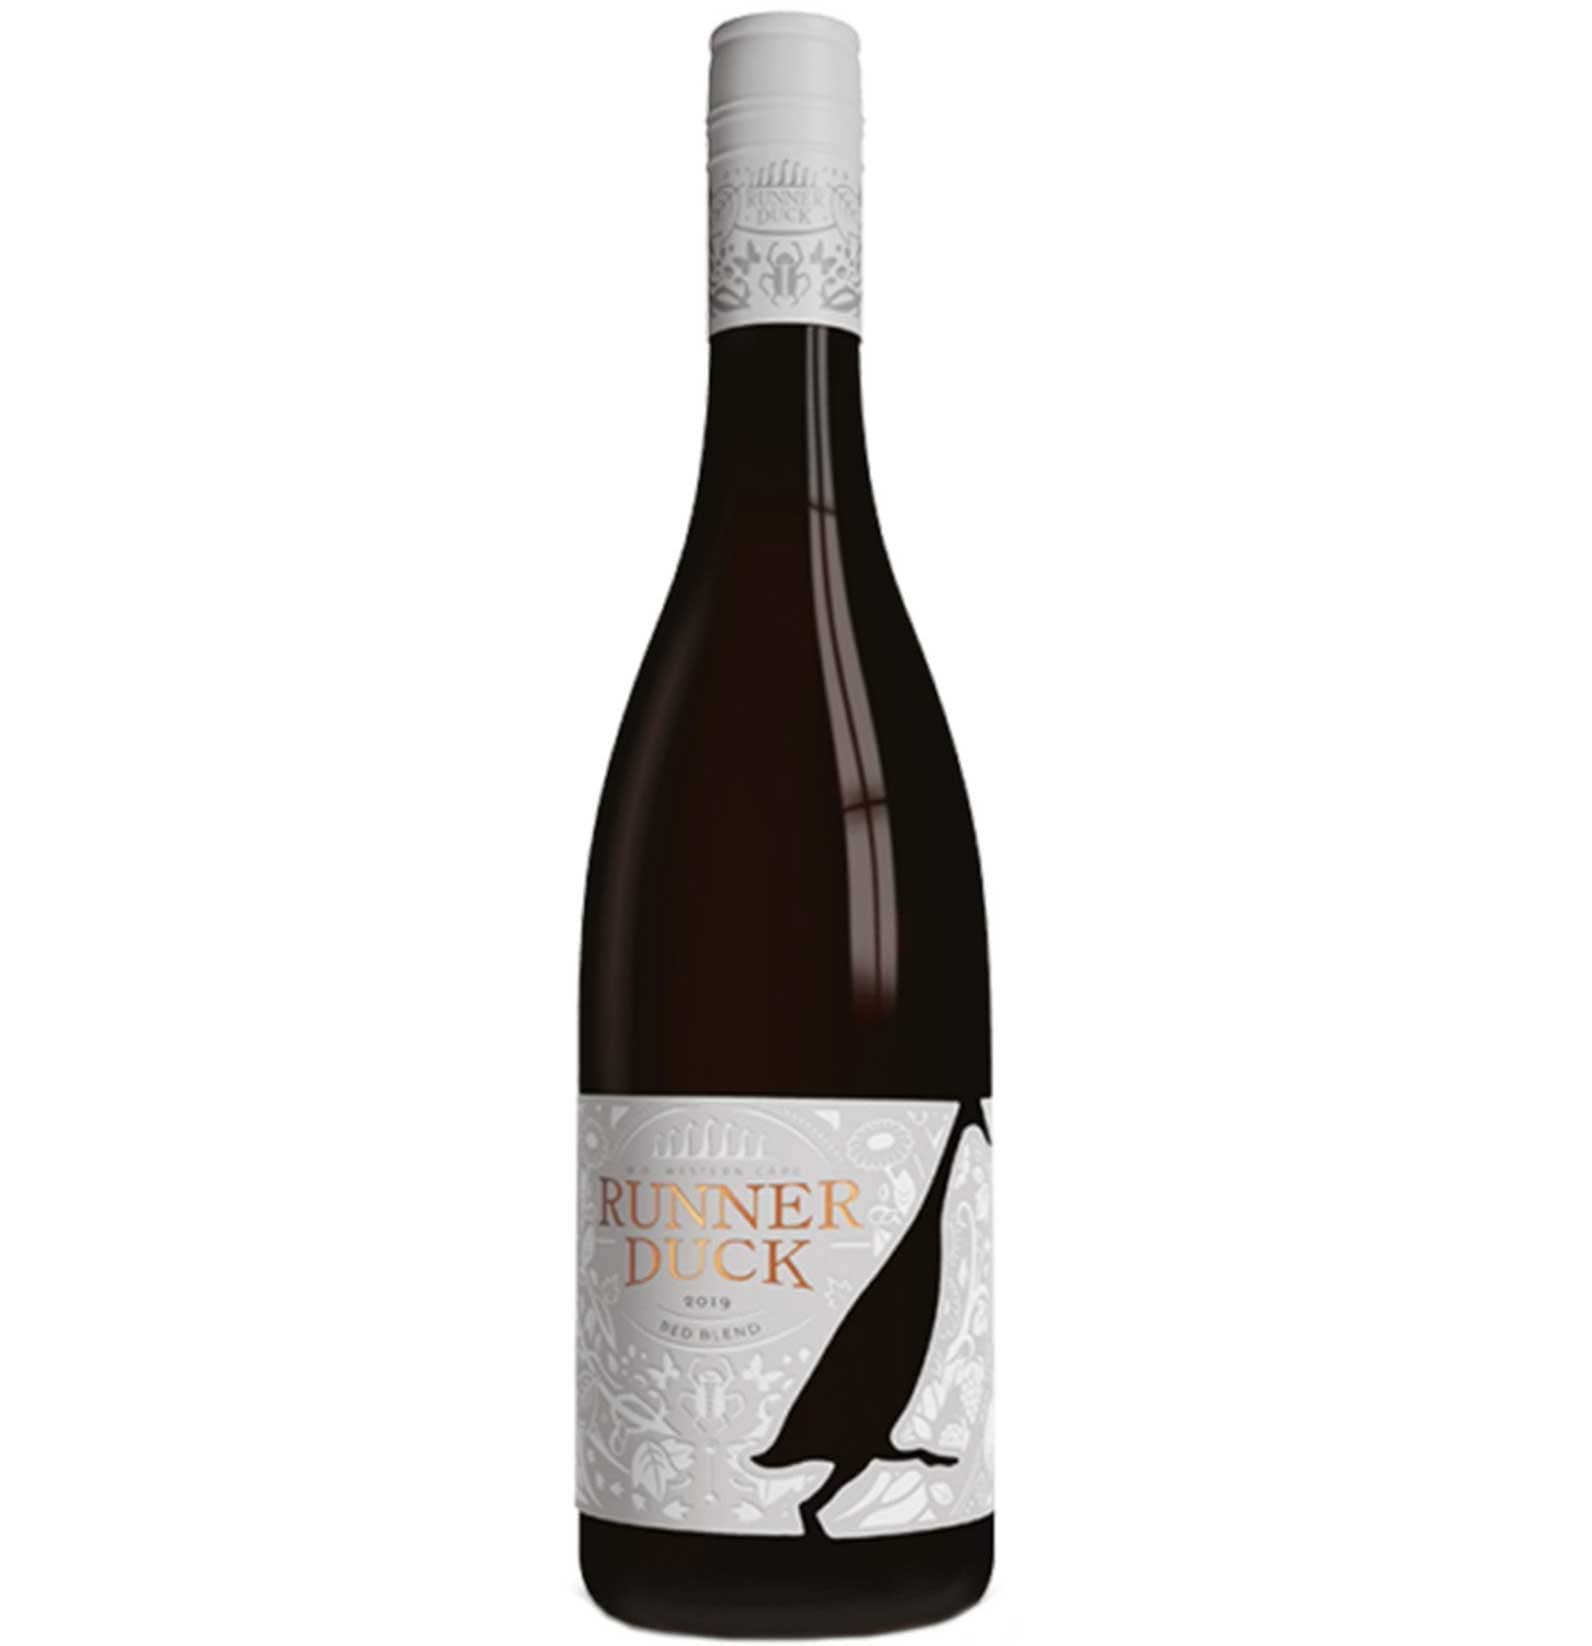 Red Wine Vergenoegd Runner Duck Red 2015 south african wine - Brands From Africa